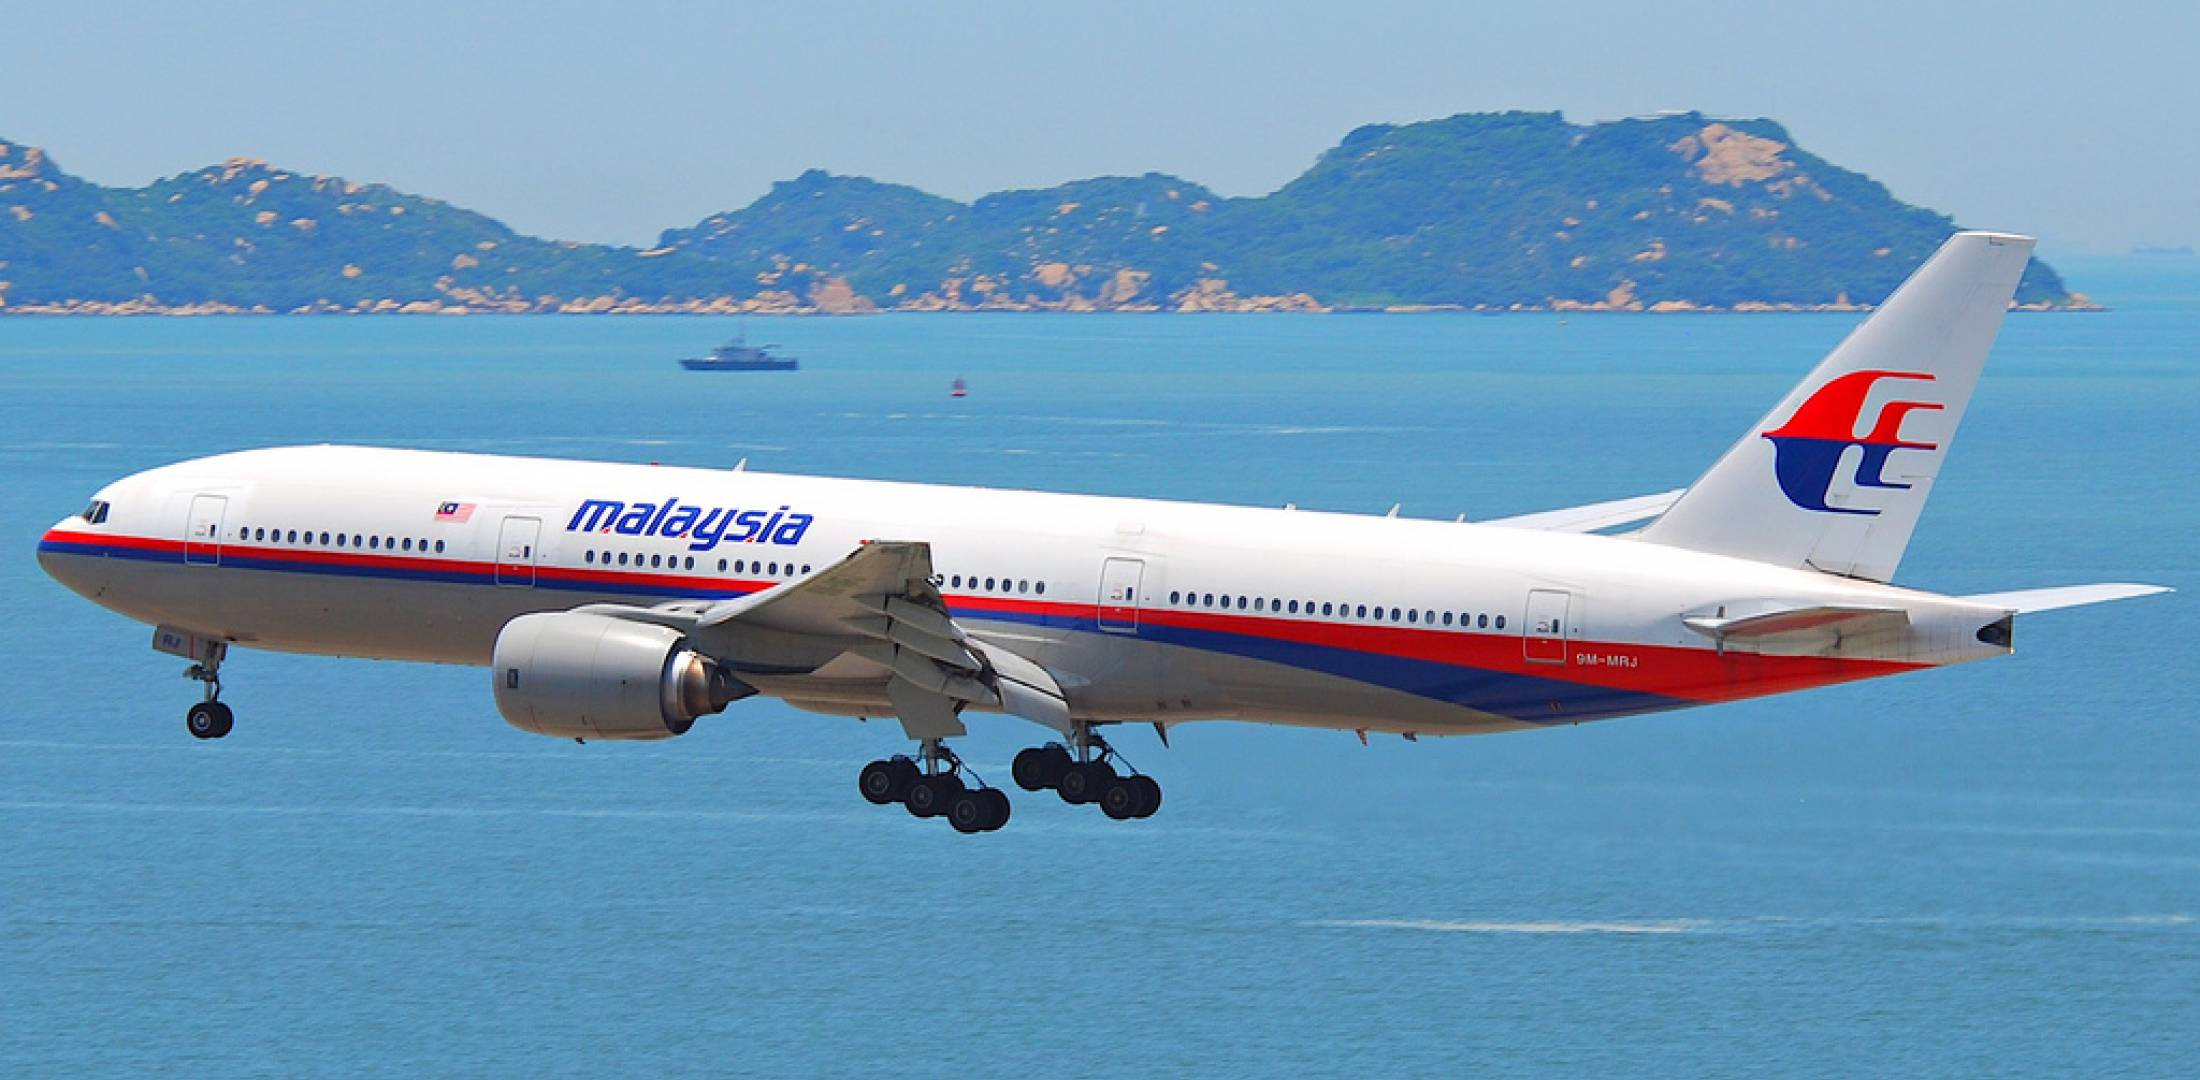 A Malaysia Airlines Boeing 777-200ER approaches Hong Kong's Chep Lap Kok  Airport. (Image: Flickr: Creative Commons (BY-SA) by Aero Icarus)